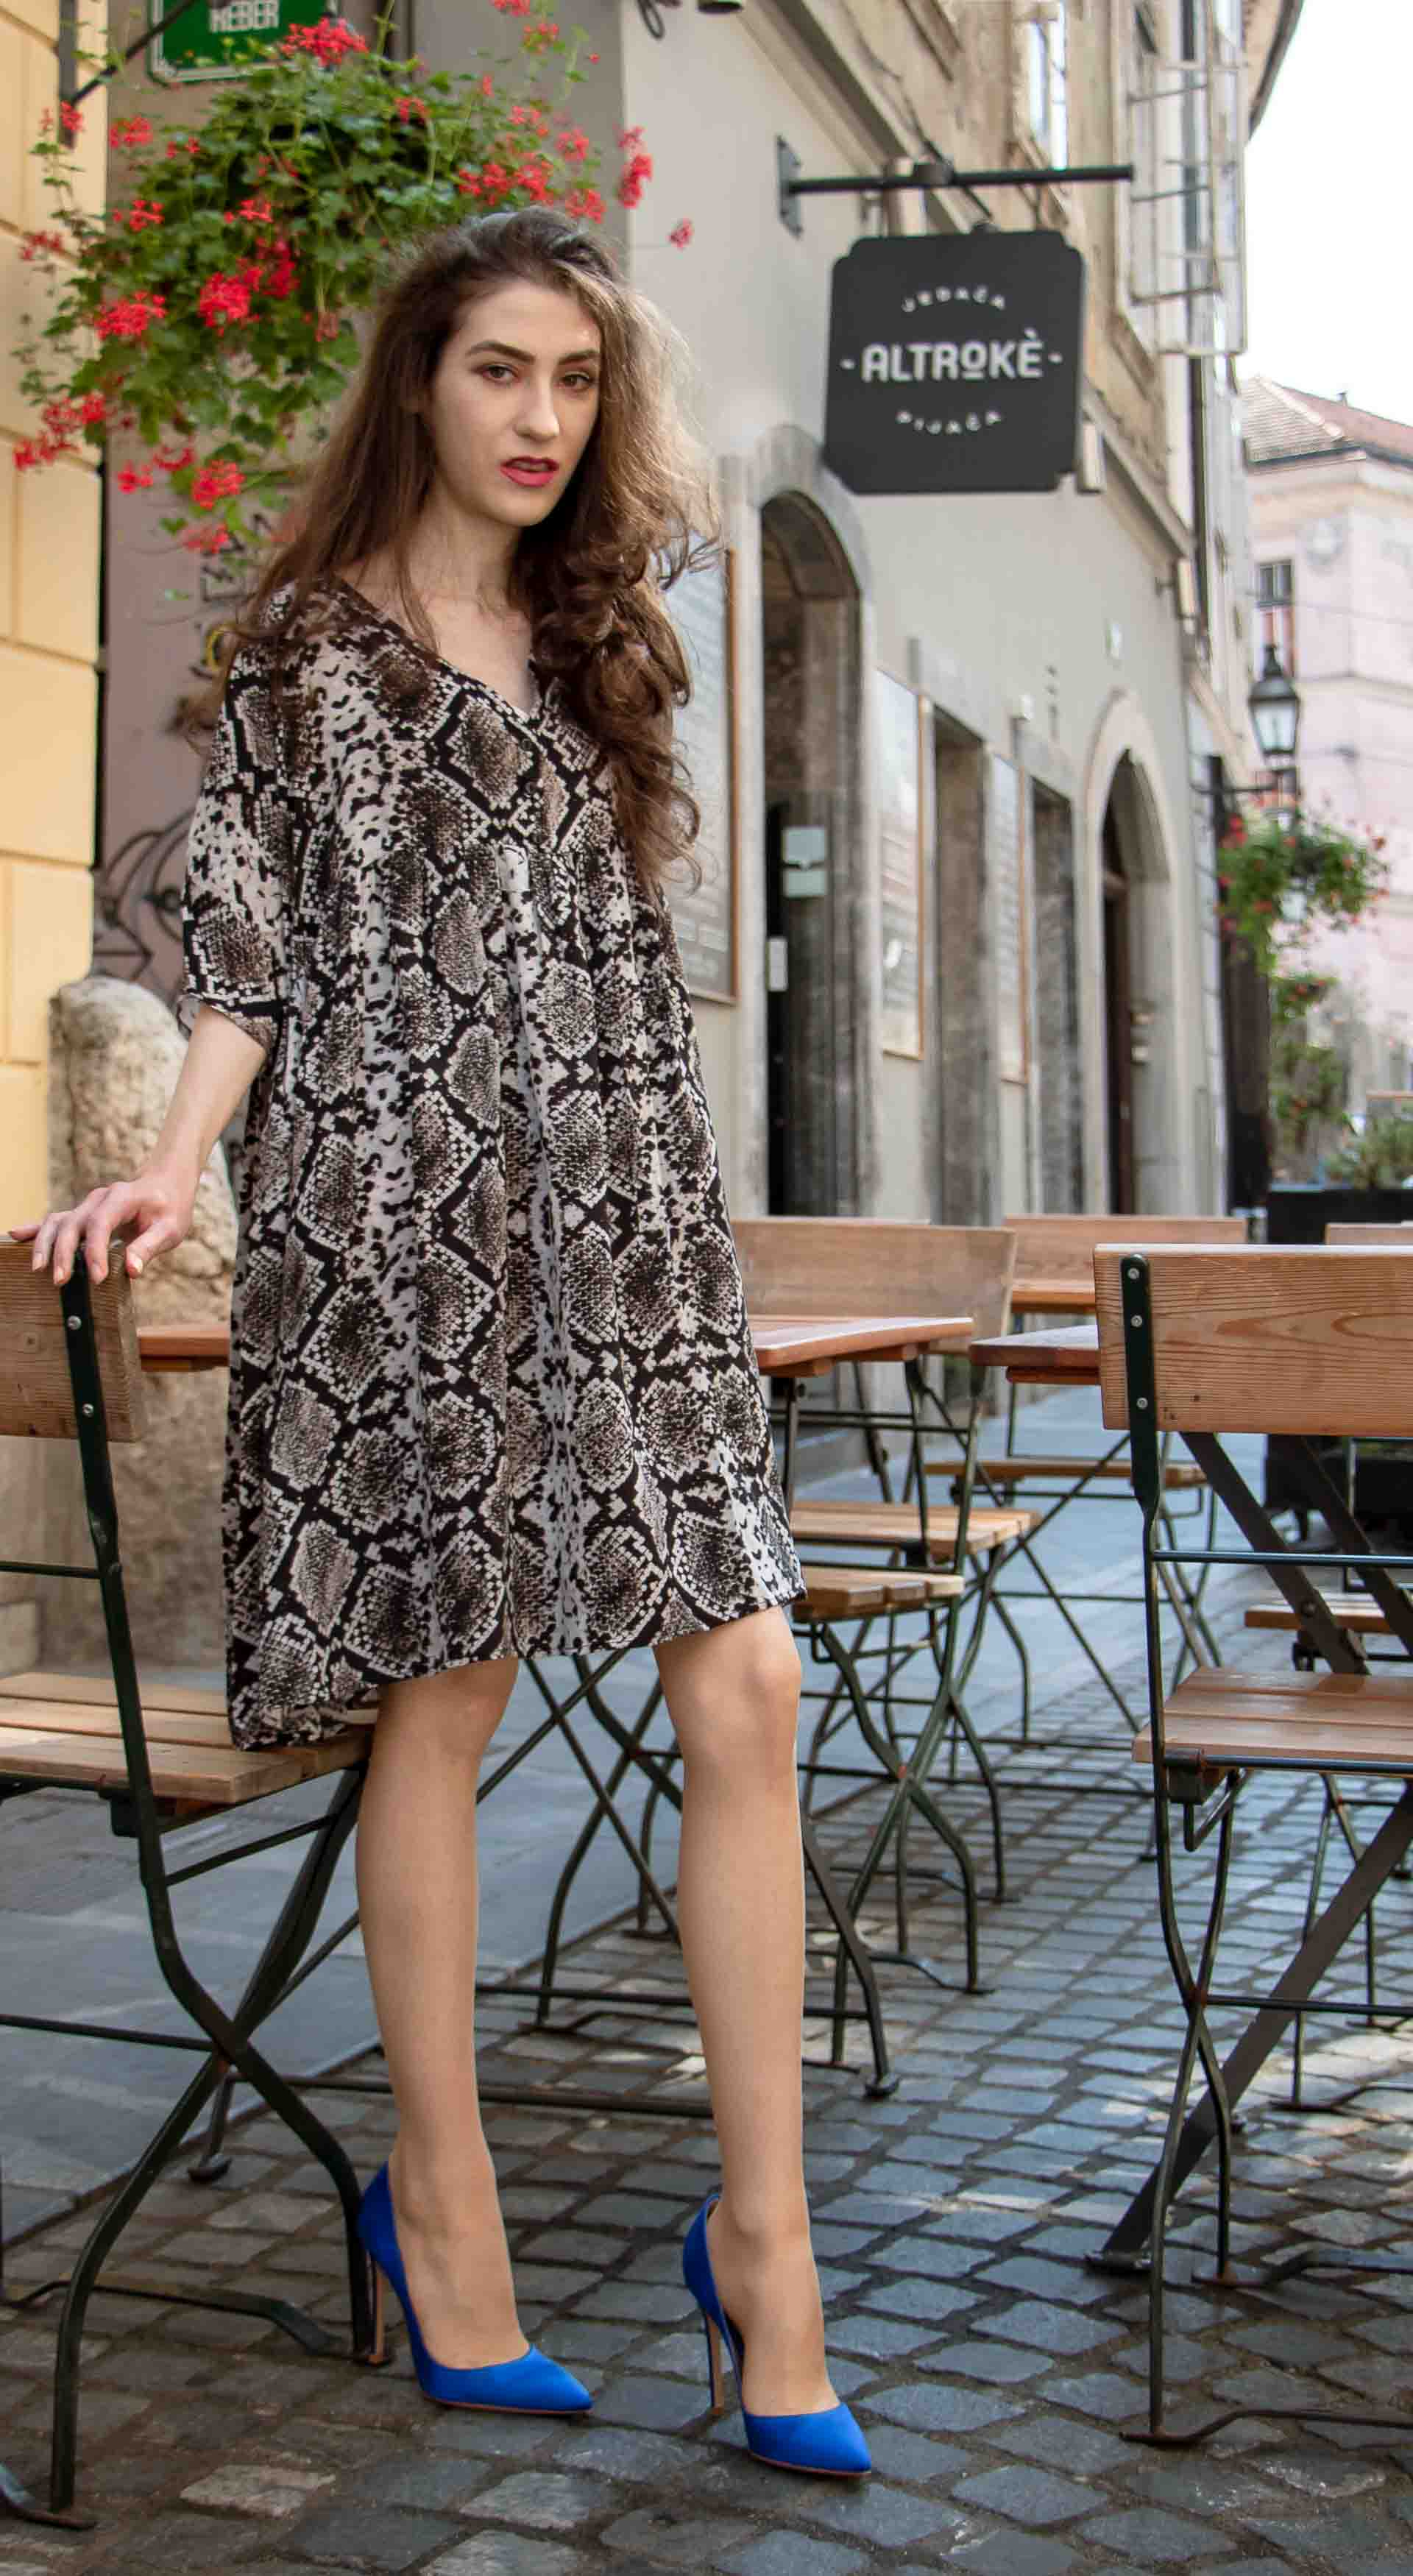 Beautiful Slovenian Fashion Blogger Veronika Lipar of Brunette from Wall wearing flowing short snake print dress from Zara, blue Gianvito Rossi satin pumps, standing by the table on the street